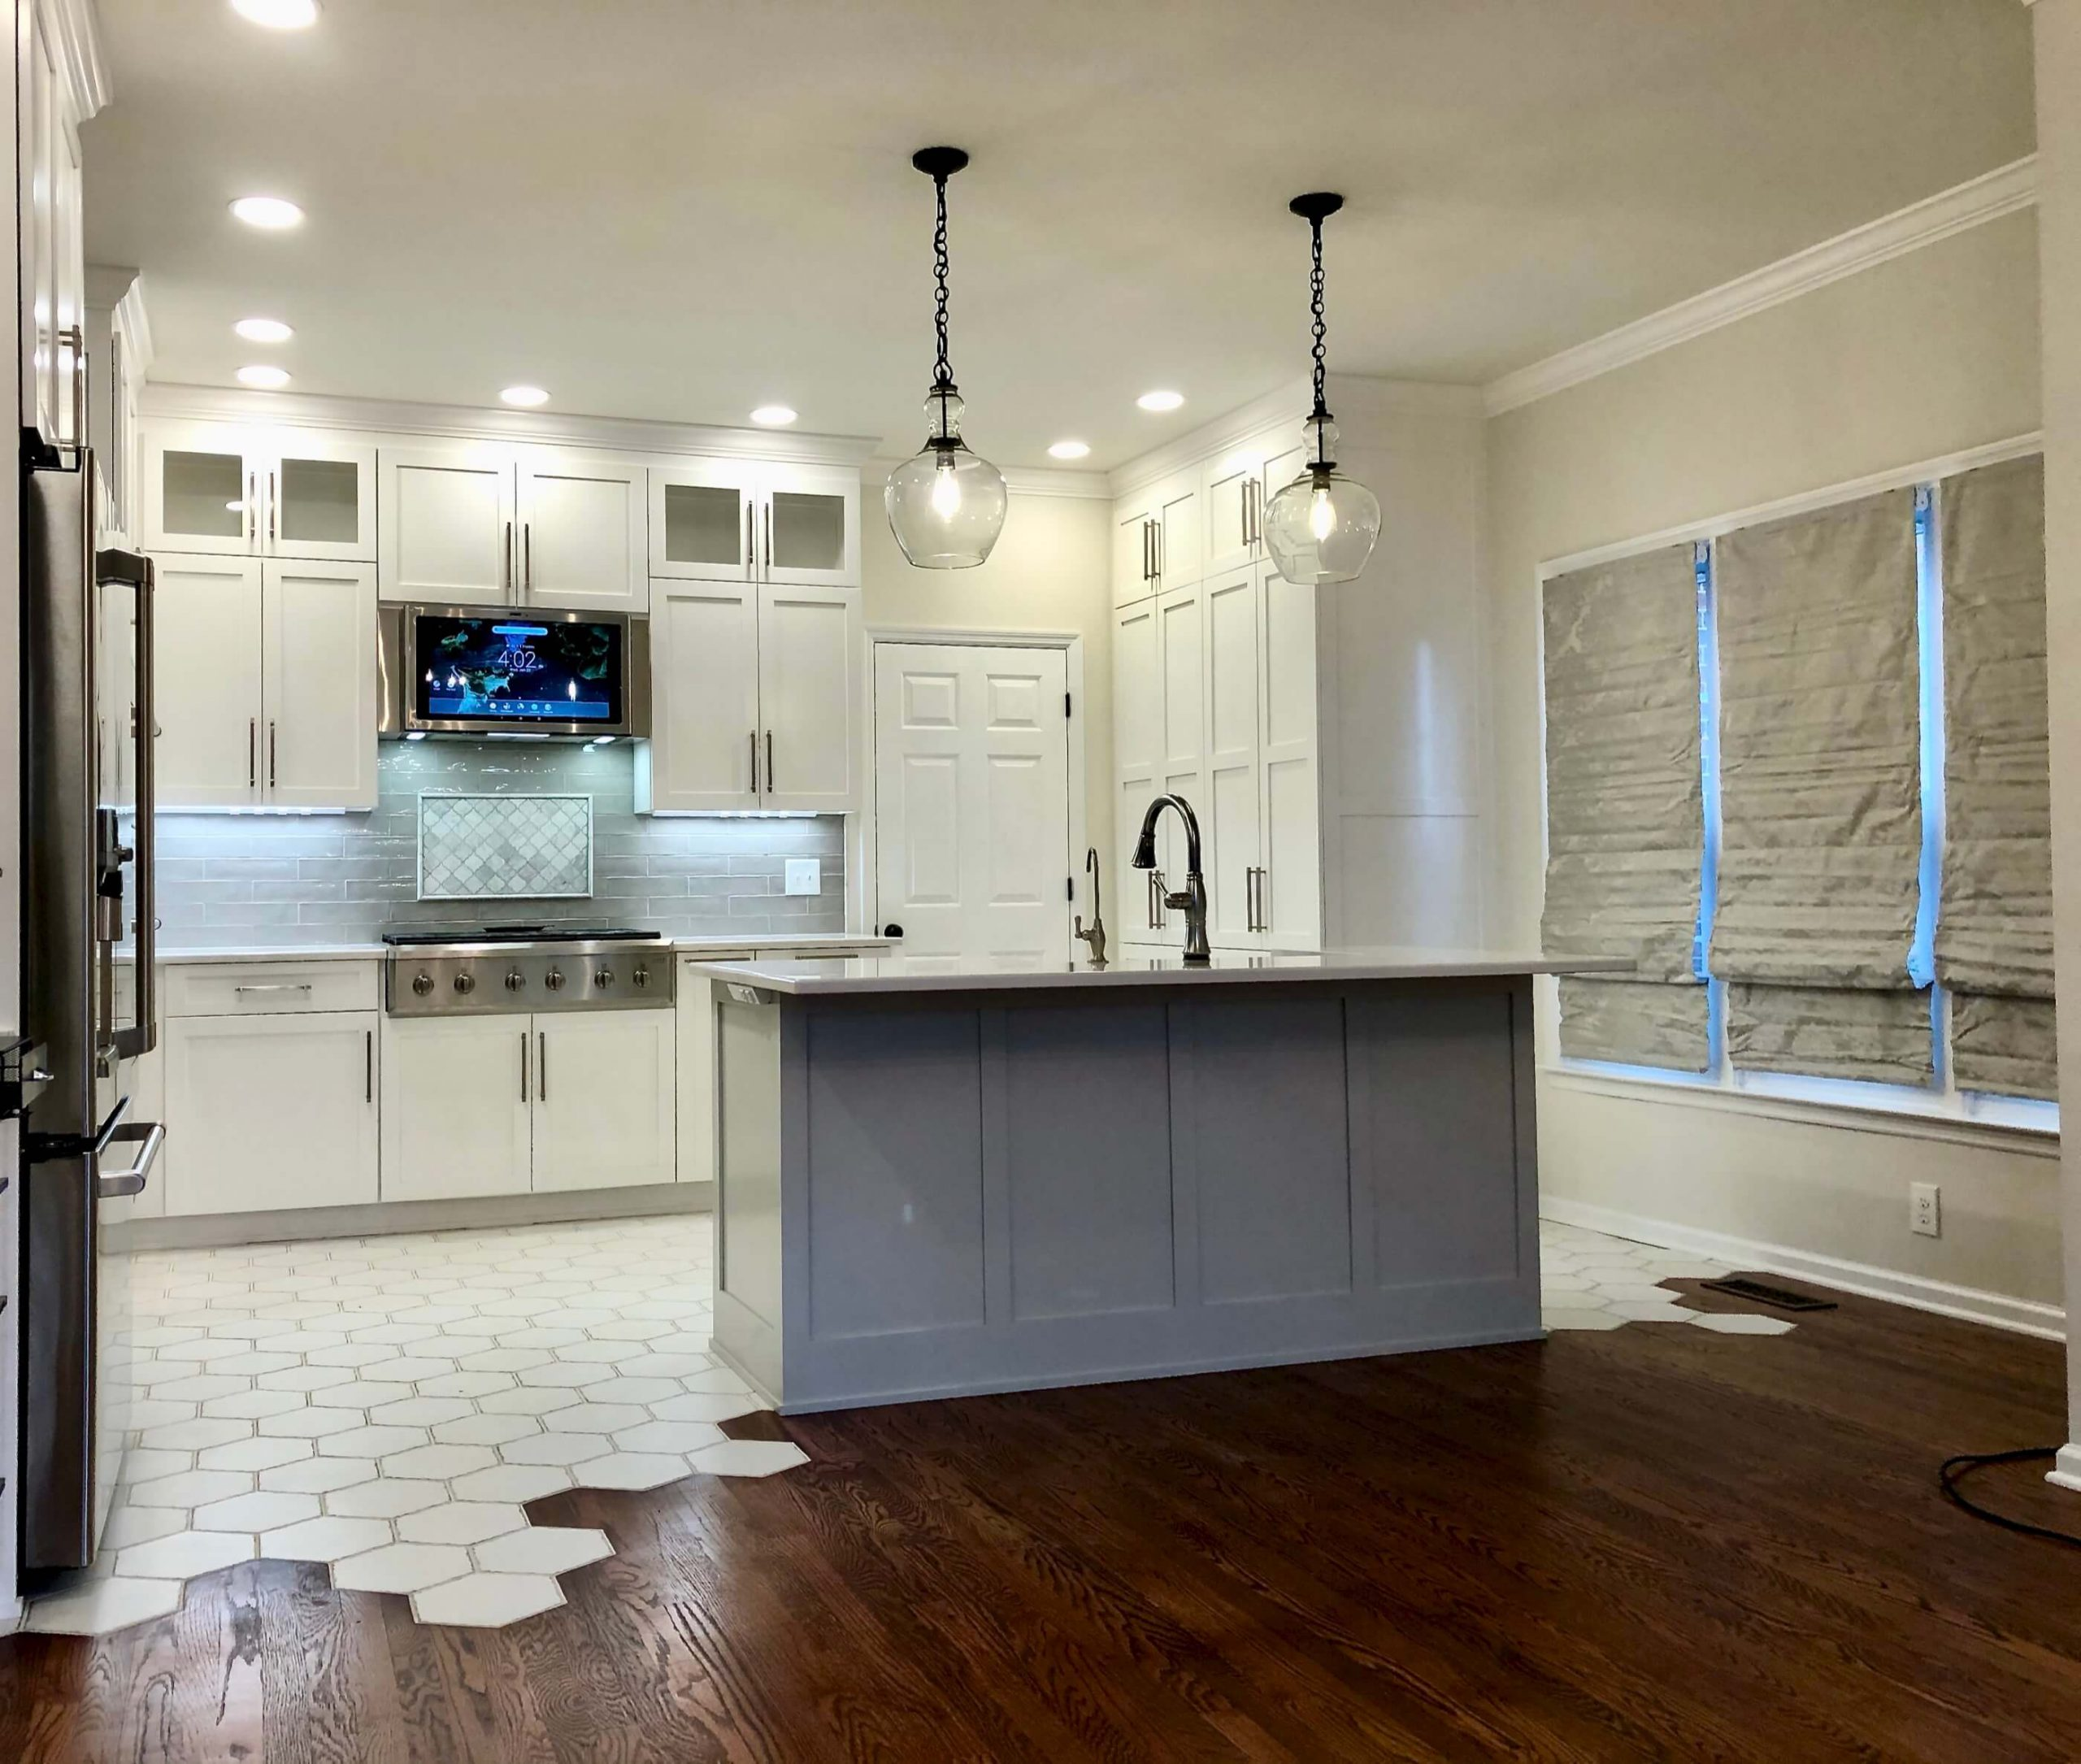 Windler Construction | Custom Kitchens, Bathrooms and Patios in Williamson County